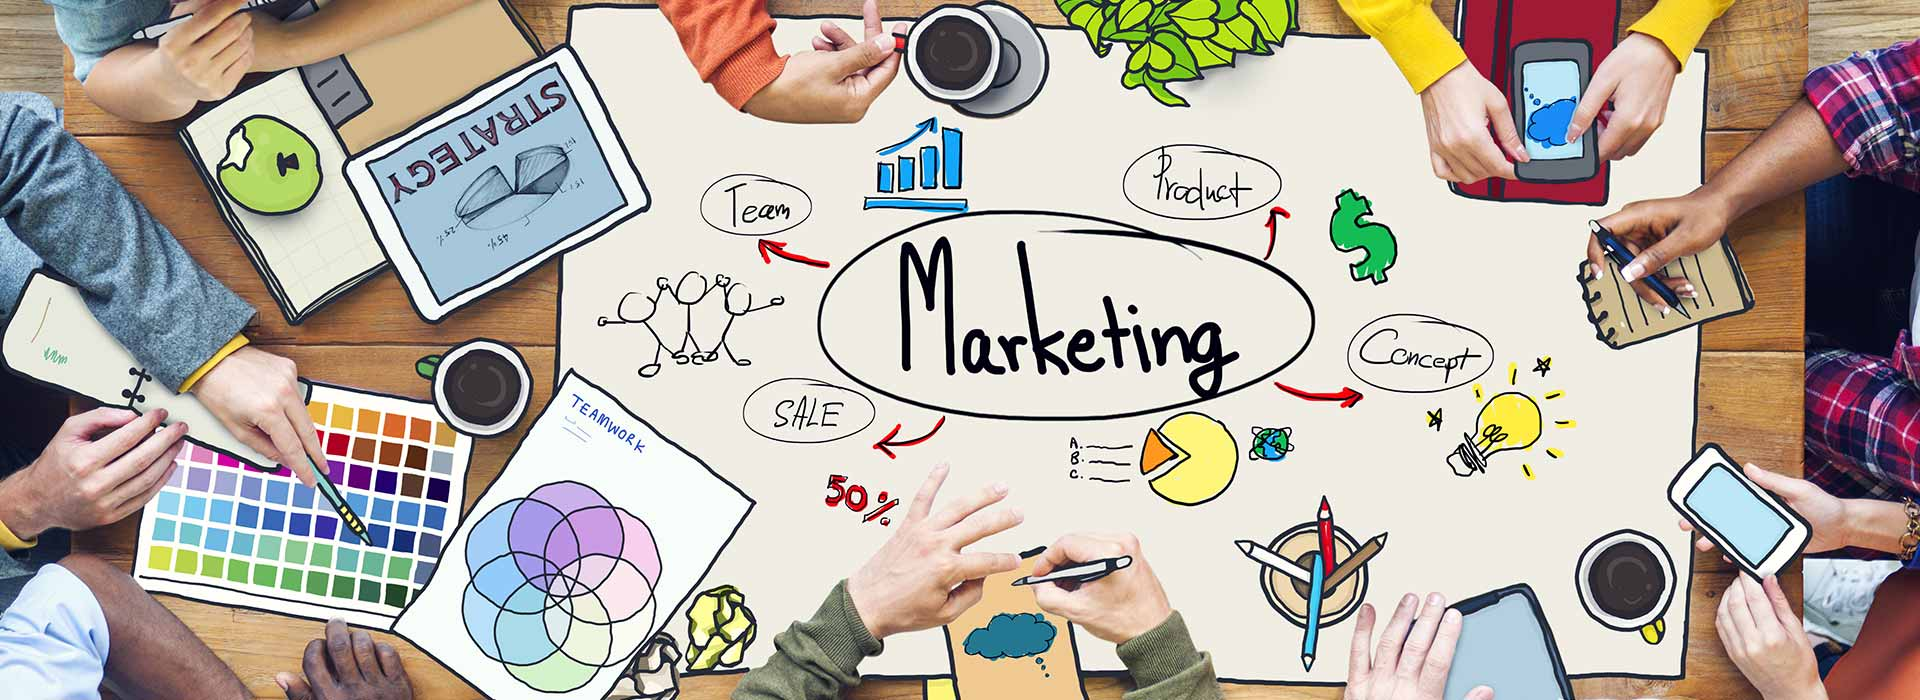 Email Marketing Services Company